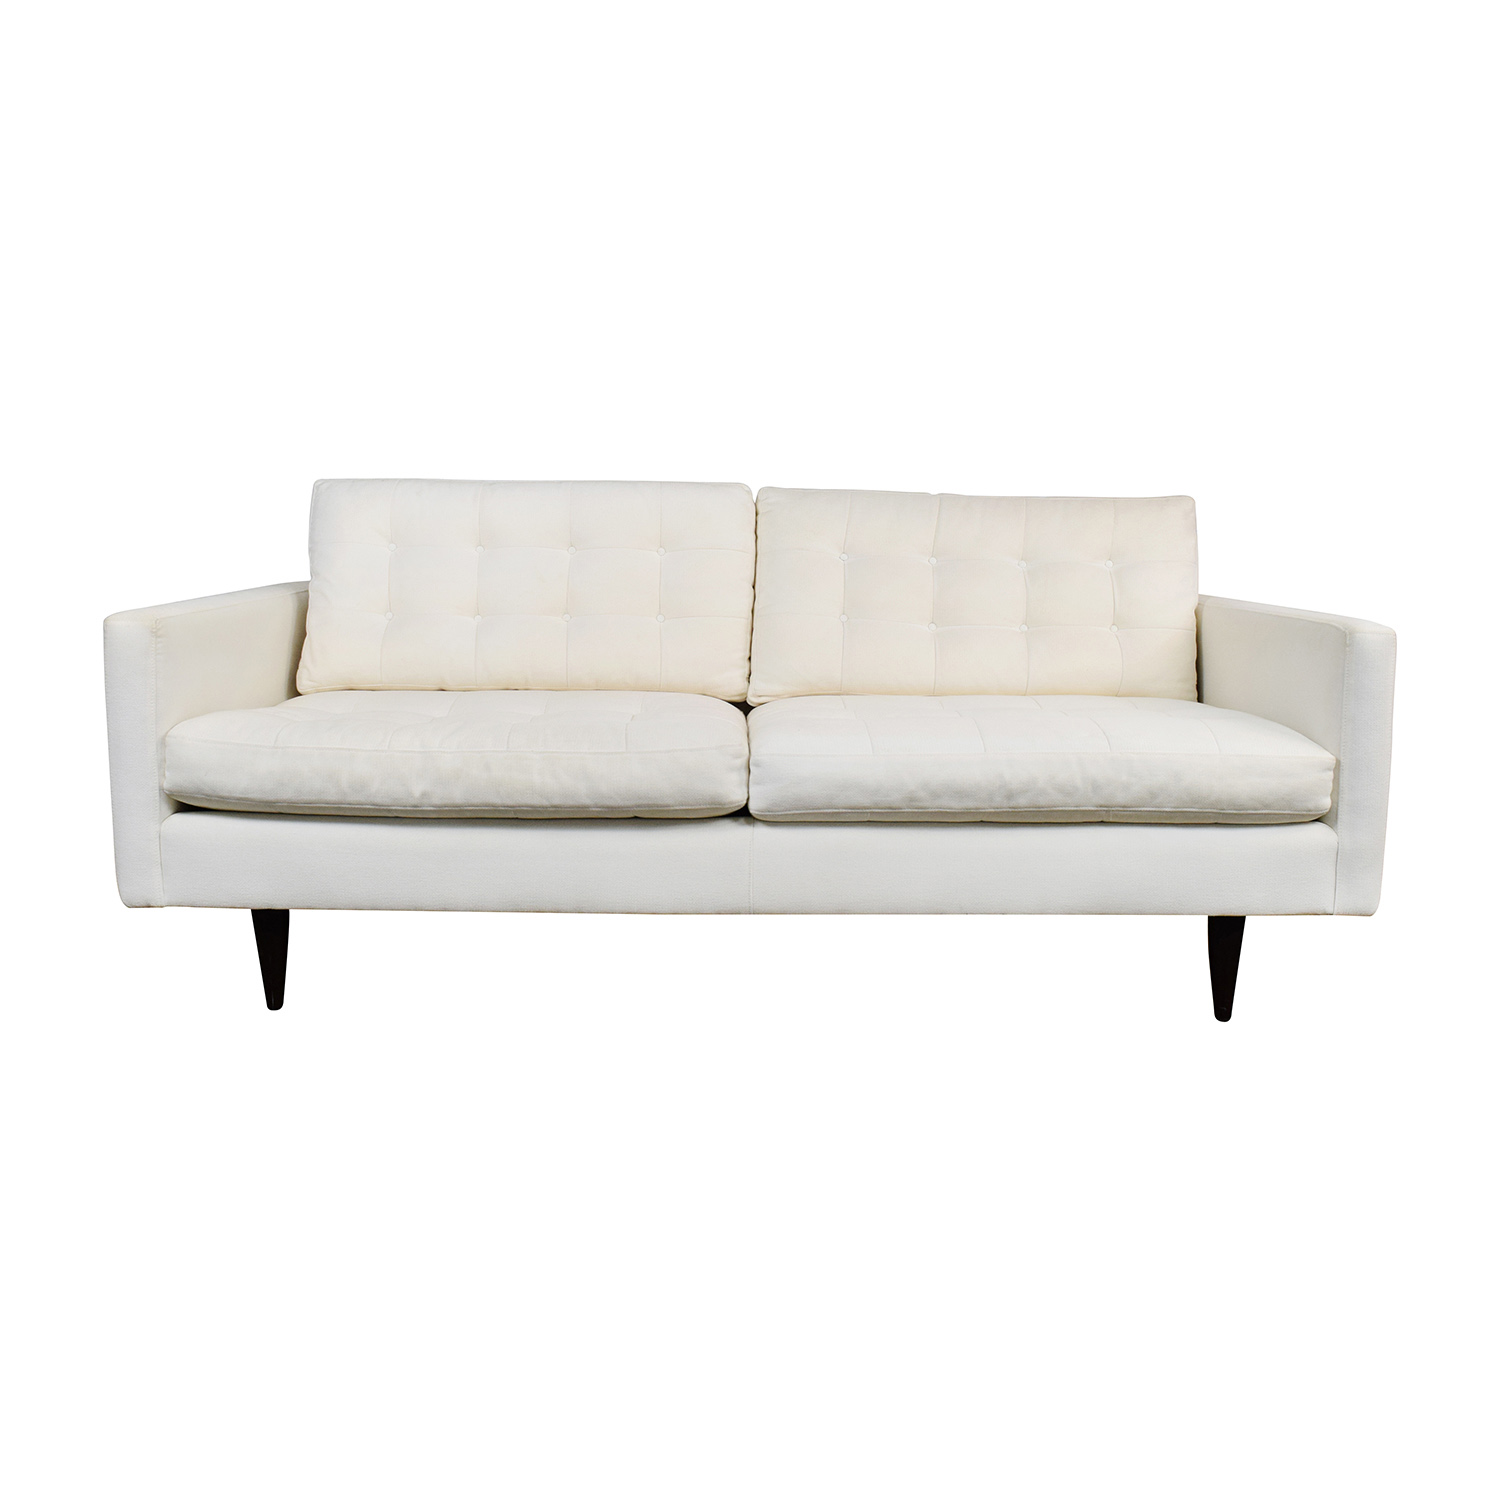 shop Crate and Barrel Crate & Barrel White Twill Tufted Sofa online